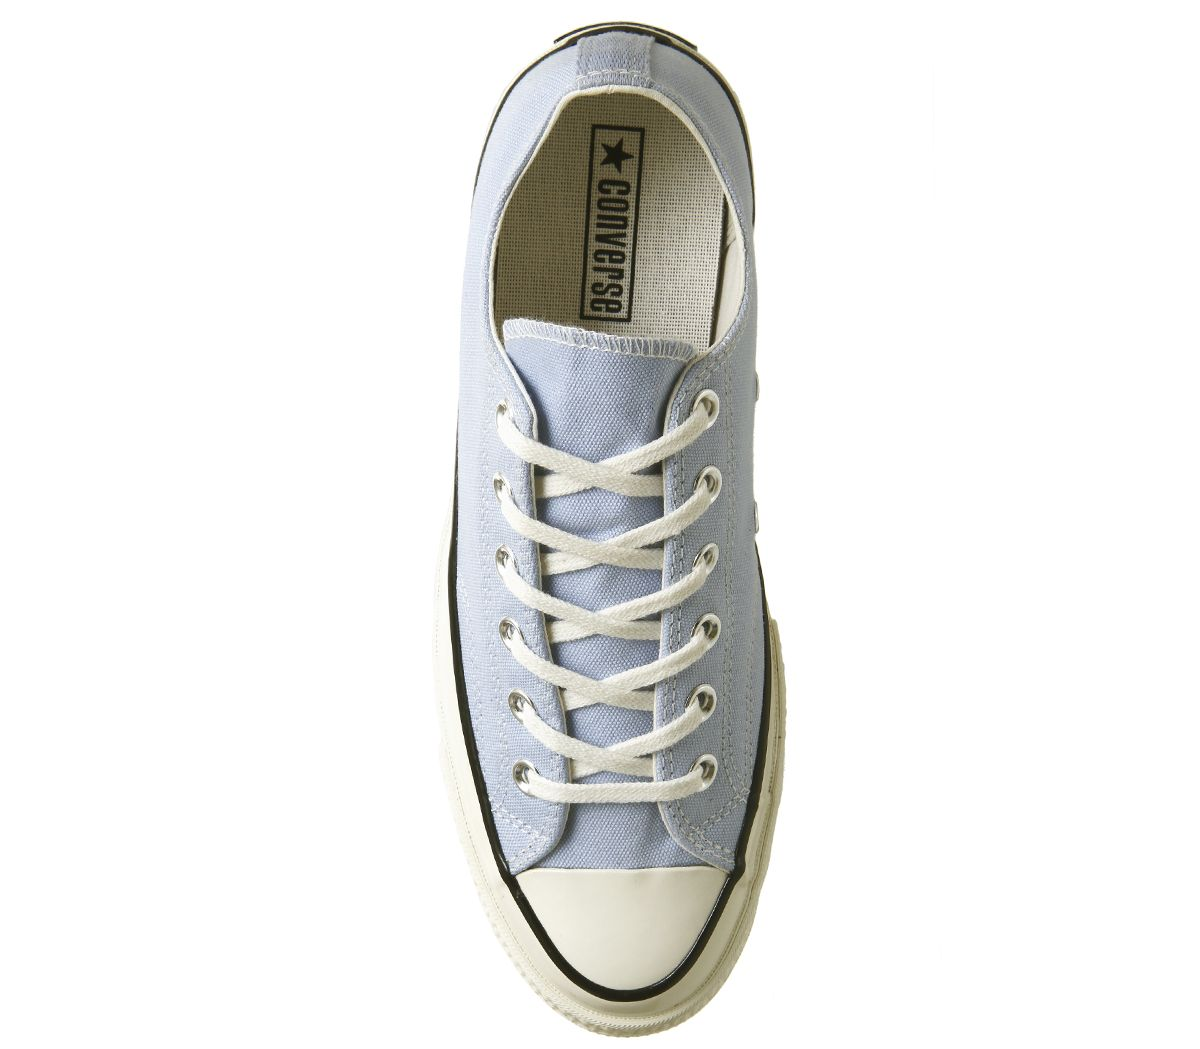 53a9aae7bdbd Converse All Star Ox 70 s Blue Chill - His trainers